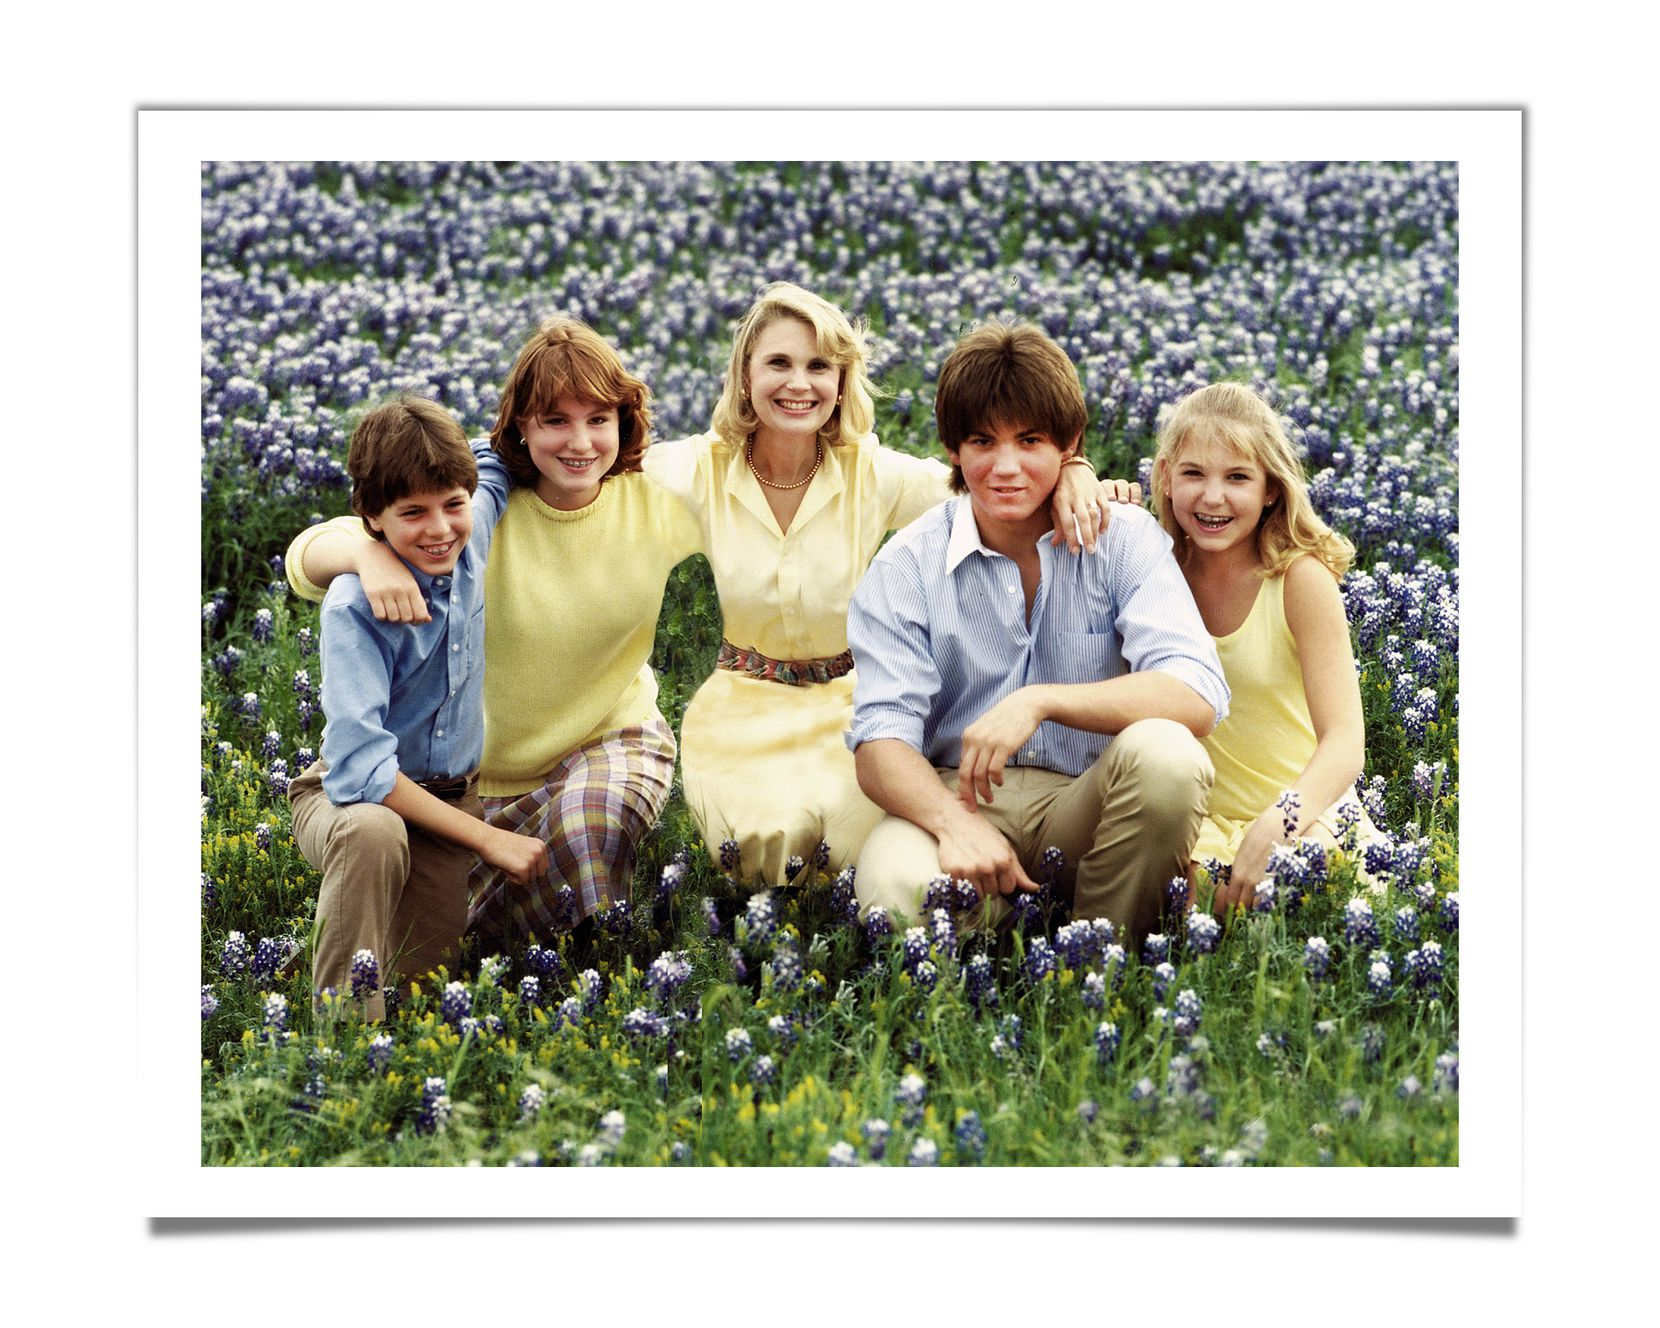 A 1981 family photo shows, from left: Keven McAlester, Martine McAlester, Virginia McAlester, Carty Talkington and Amy Talkington.